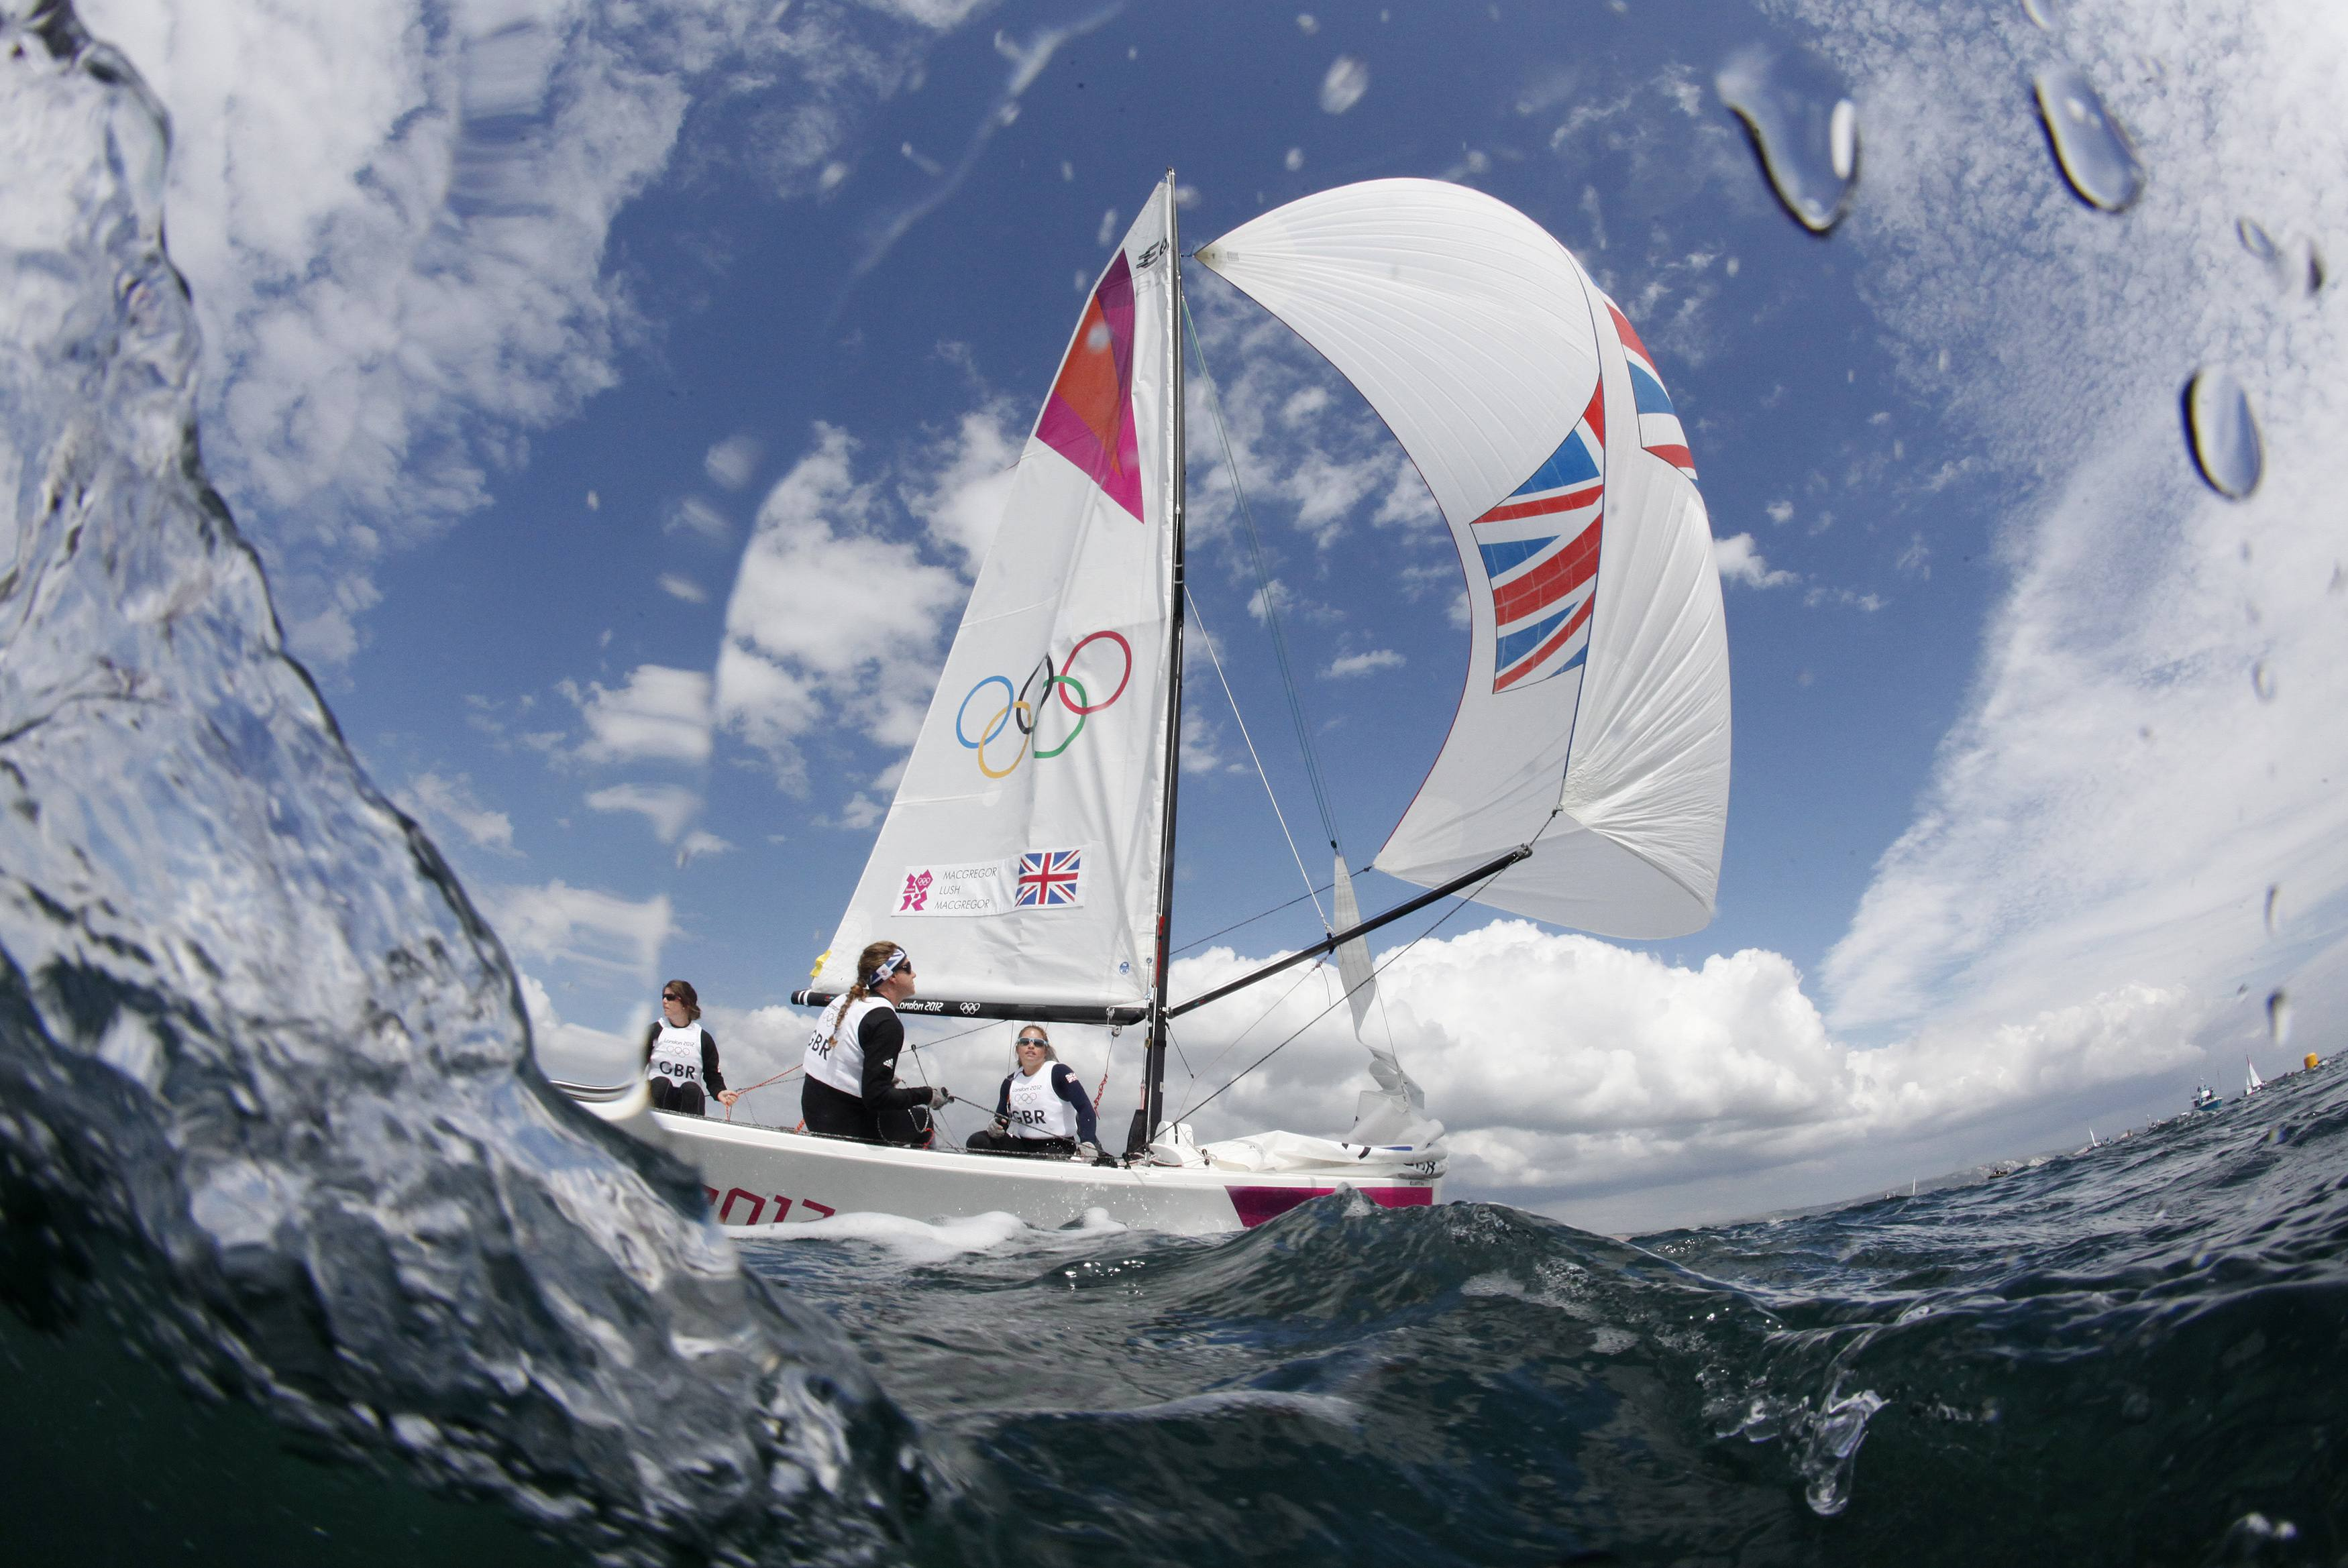 Annie Lush, Kate Macgregor and Lucy Macgregor of Britain sail in the Elliott 6m class before a practice race during the London 2012 Olympic Games in Weymouth and Portland, southern England, July 28, 2012. REUTERS/Pascal Lauener (BRITAIN - Tags: SPORT YACHTING OLYMPICS)